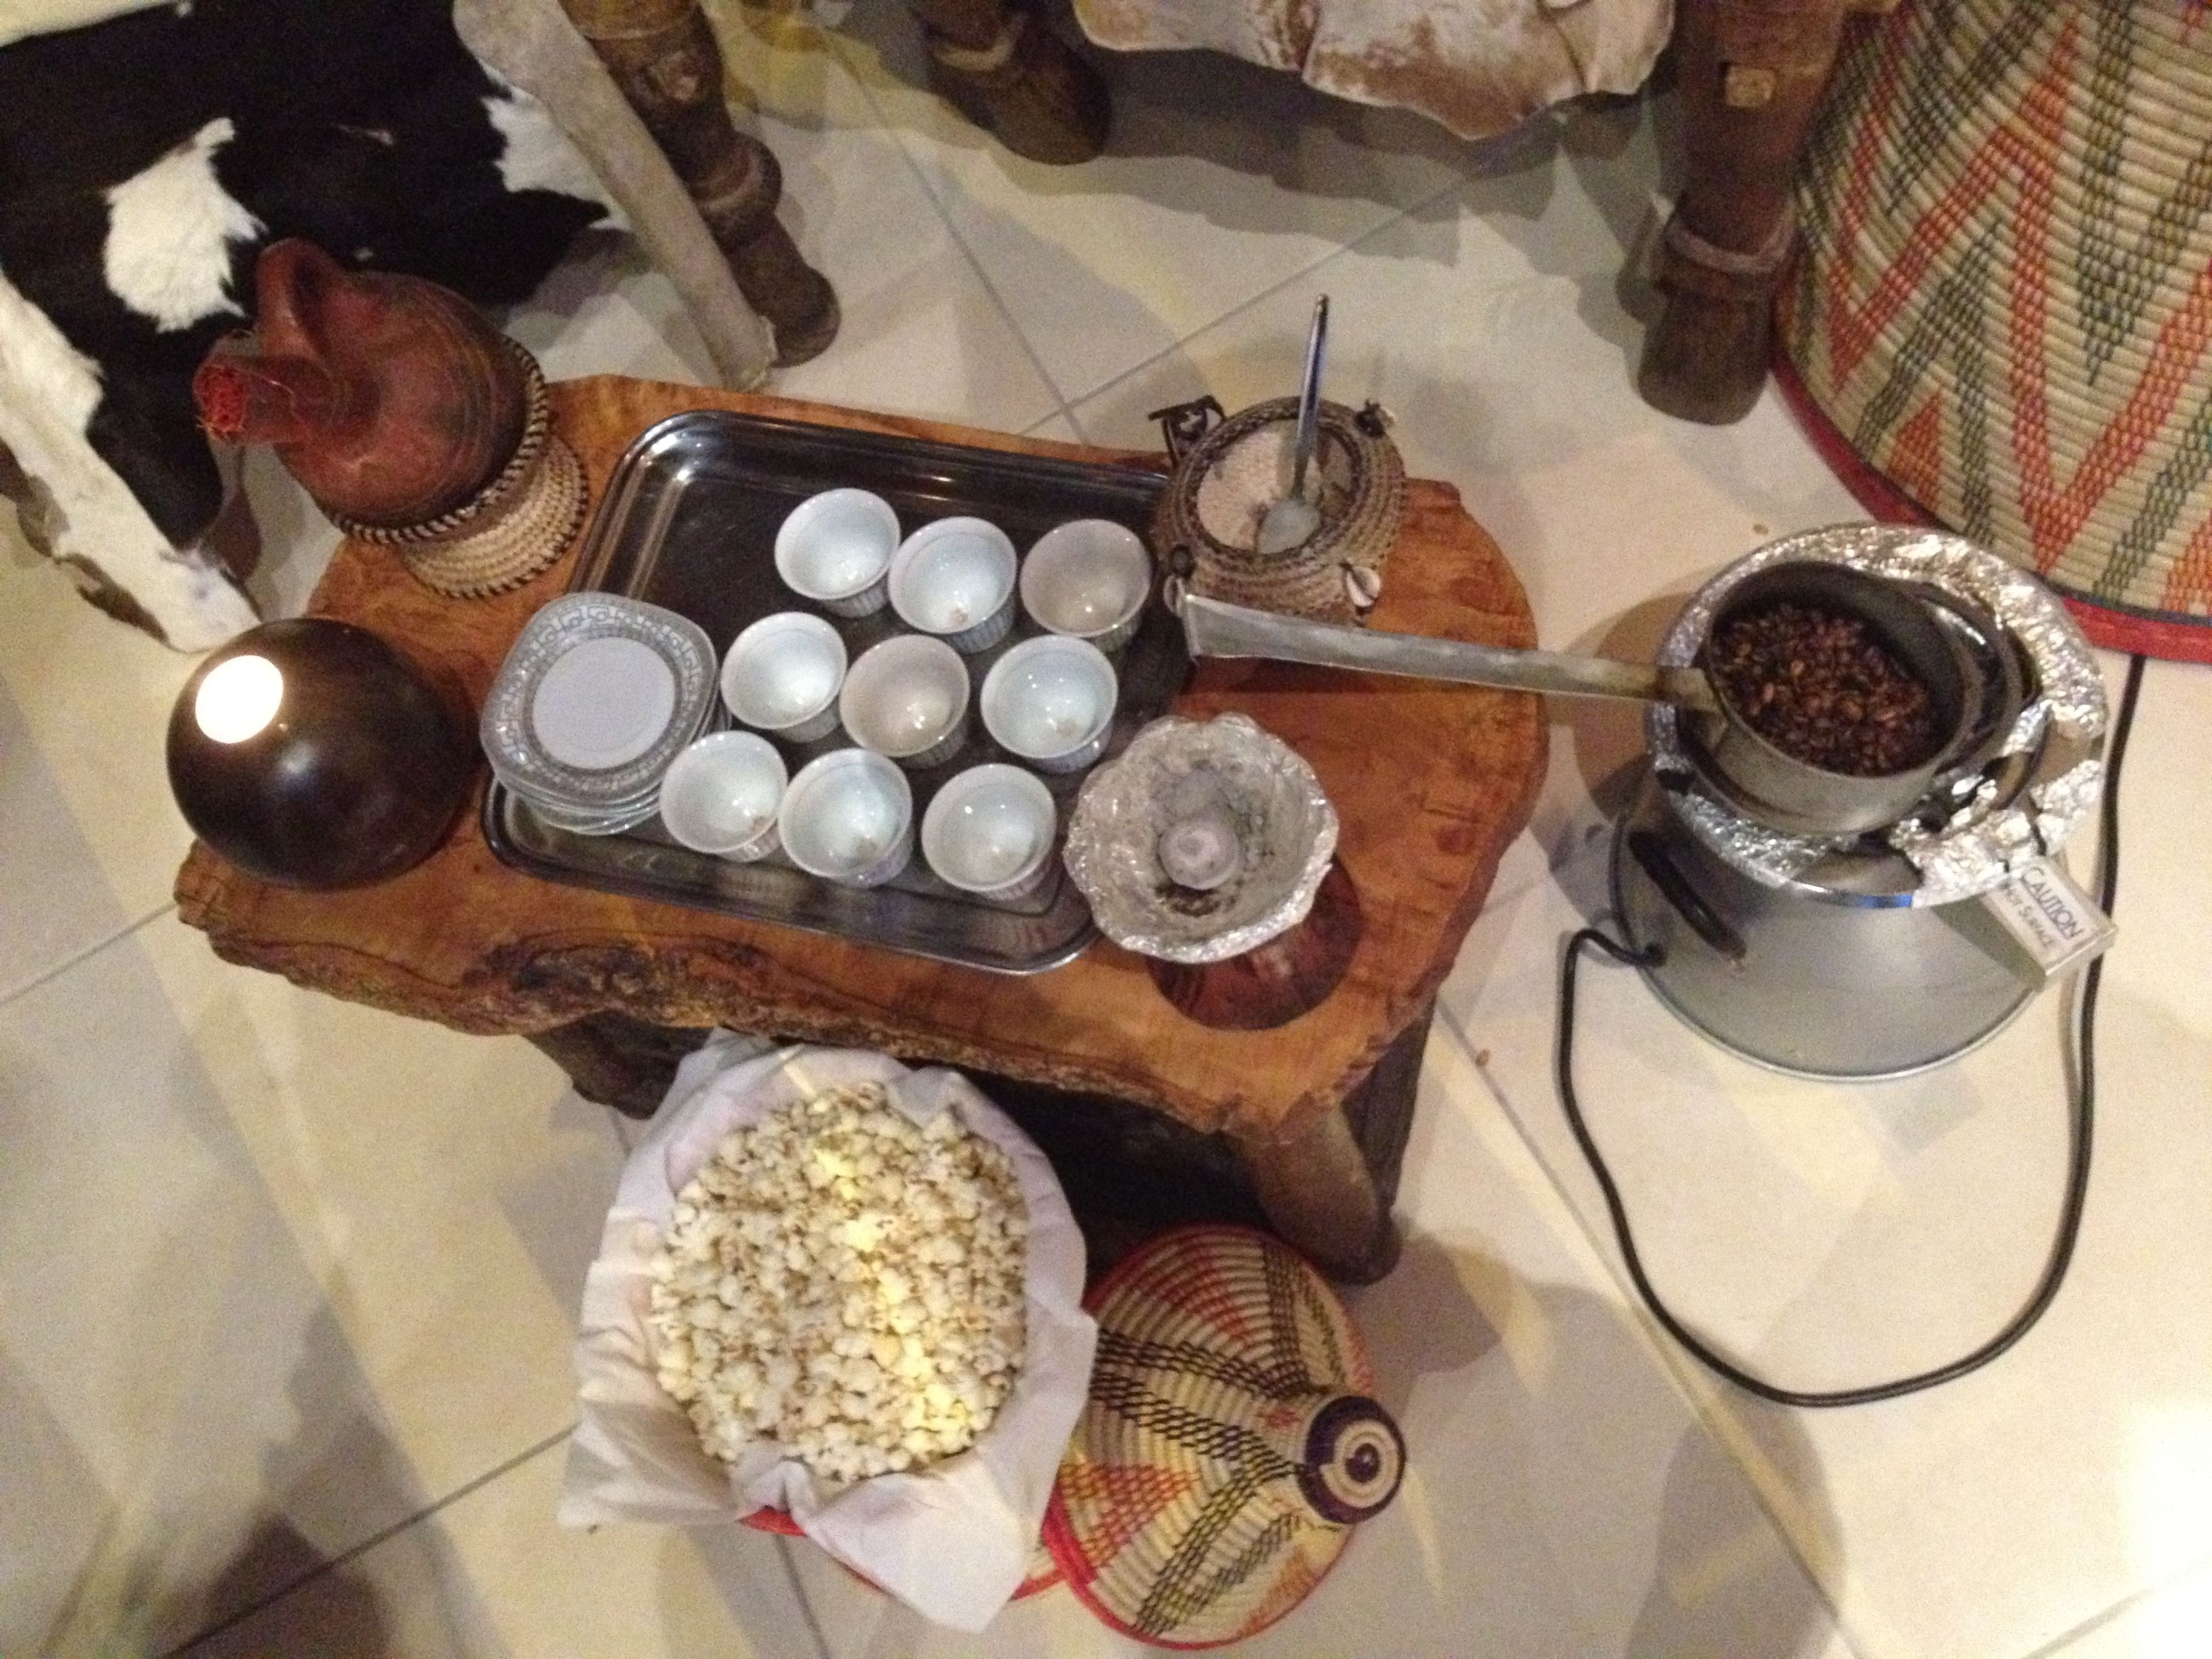 eritrean coffee ceremony at adulis, st john's hill, battersea